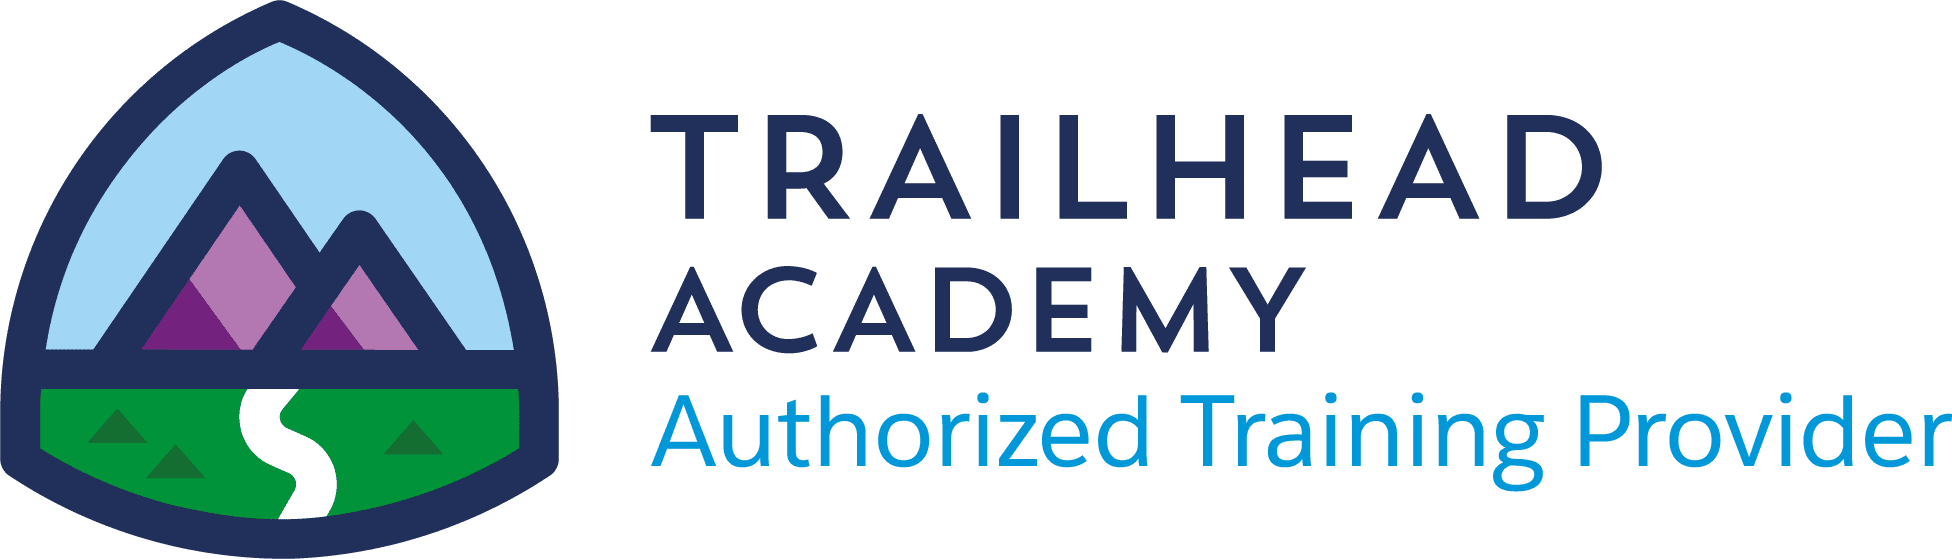 Salesforce Trailhead Academy logo